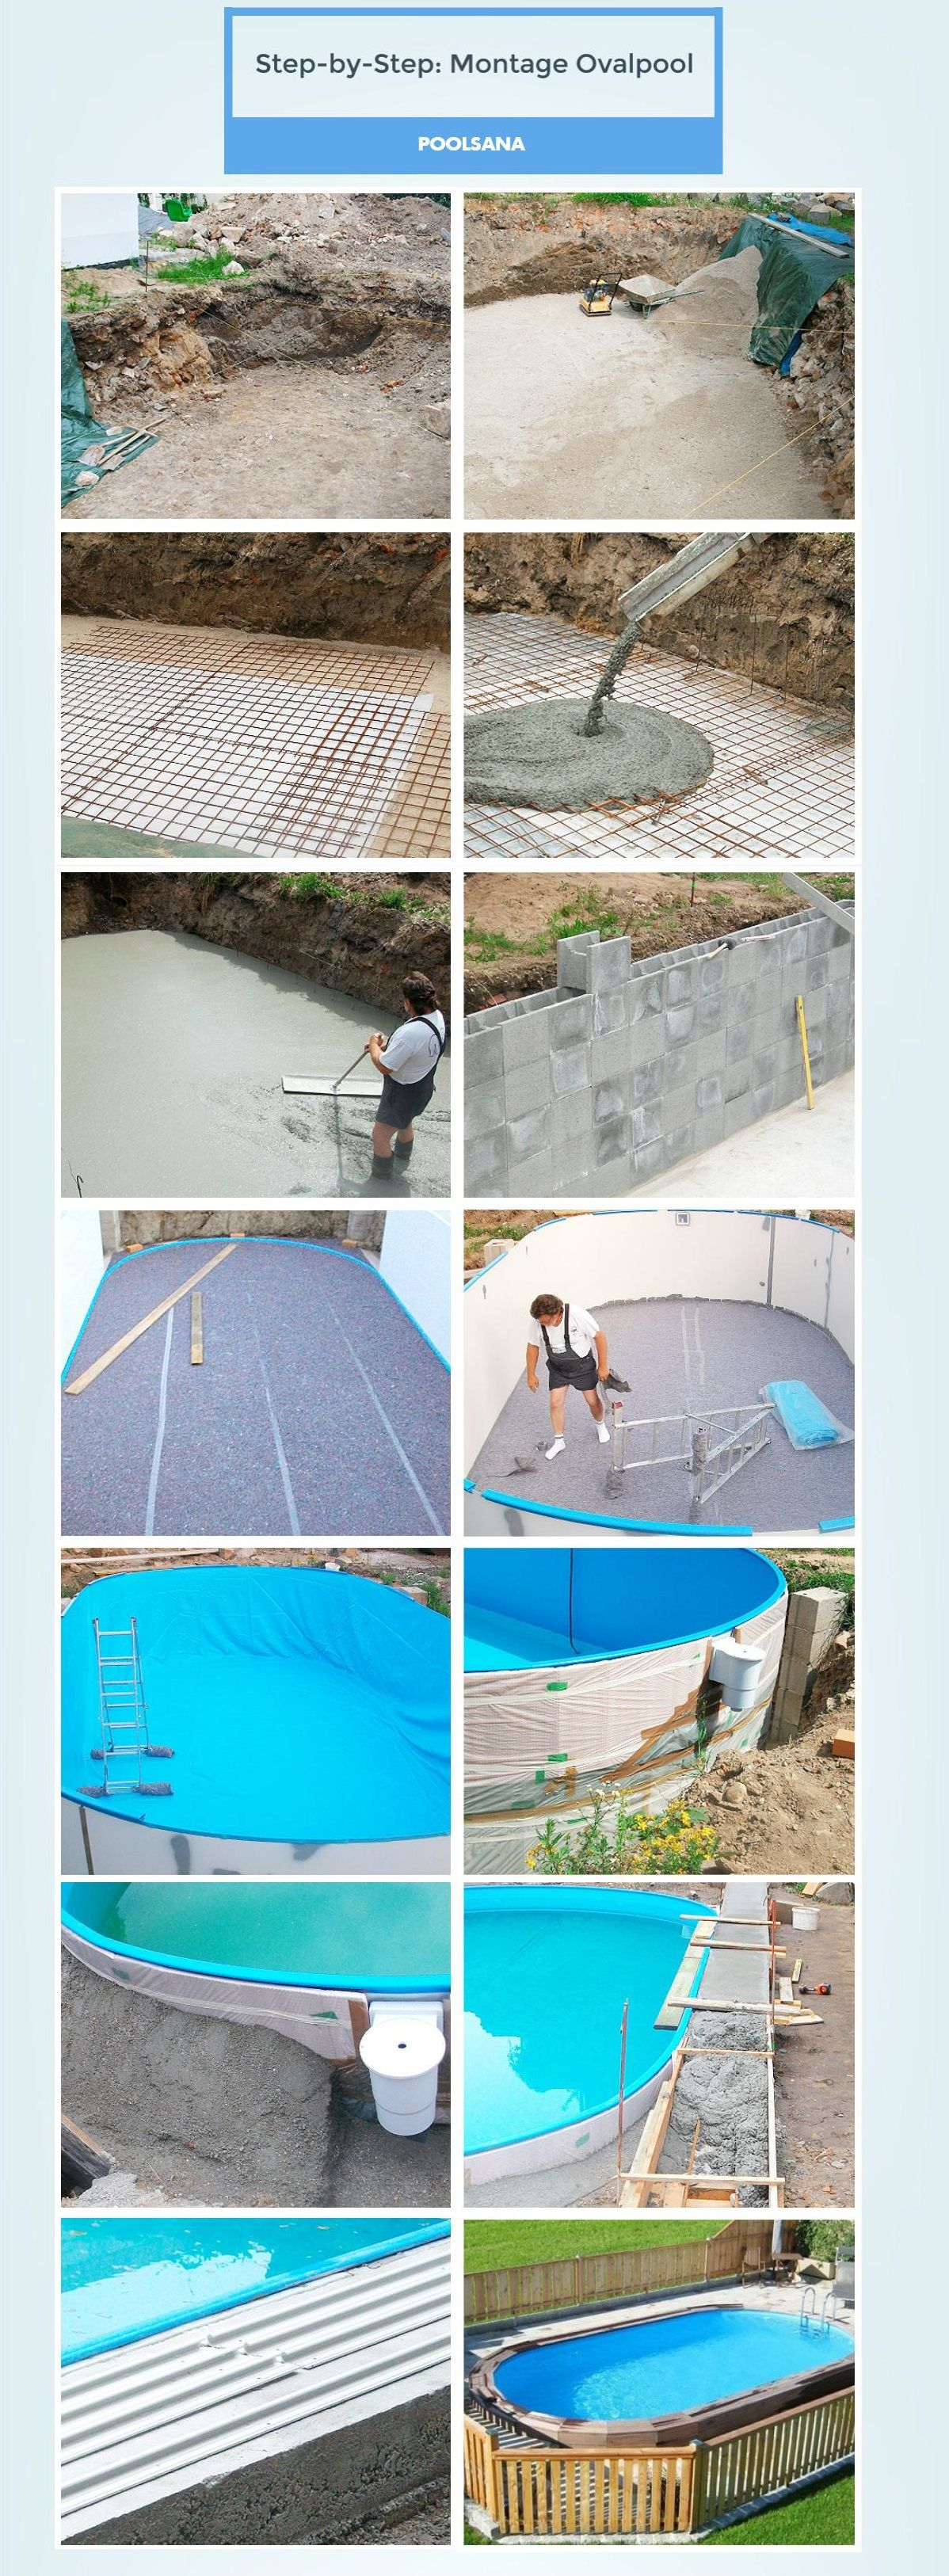 Poolheizung Diy Poolheizung Diy Step By Step Den Eigenen Ovalpool